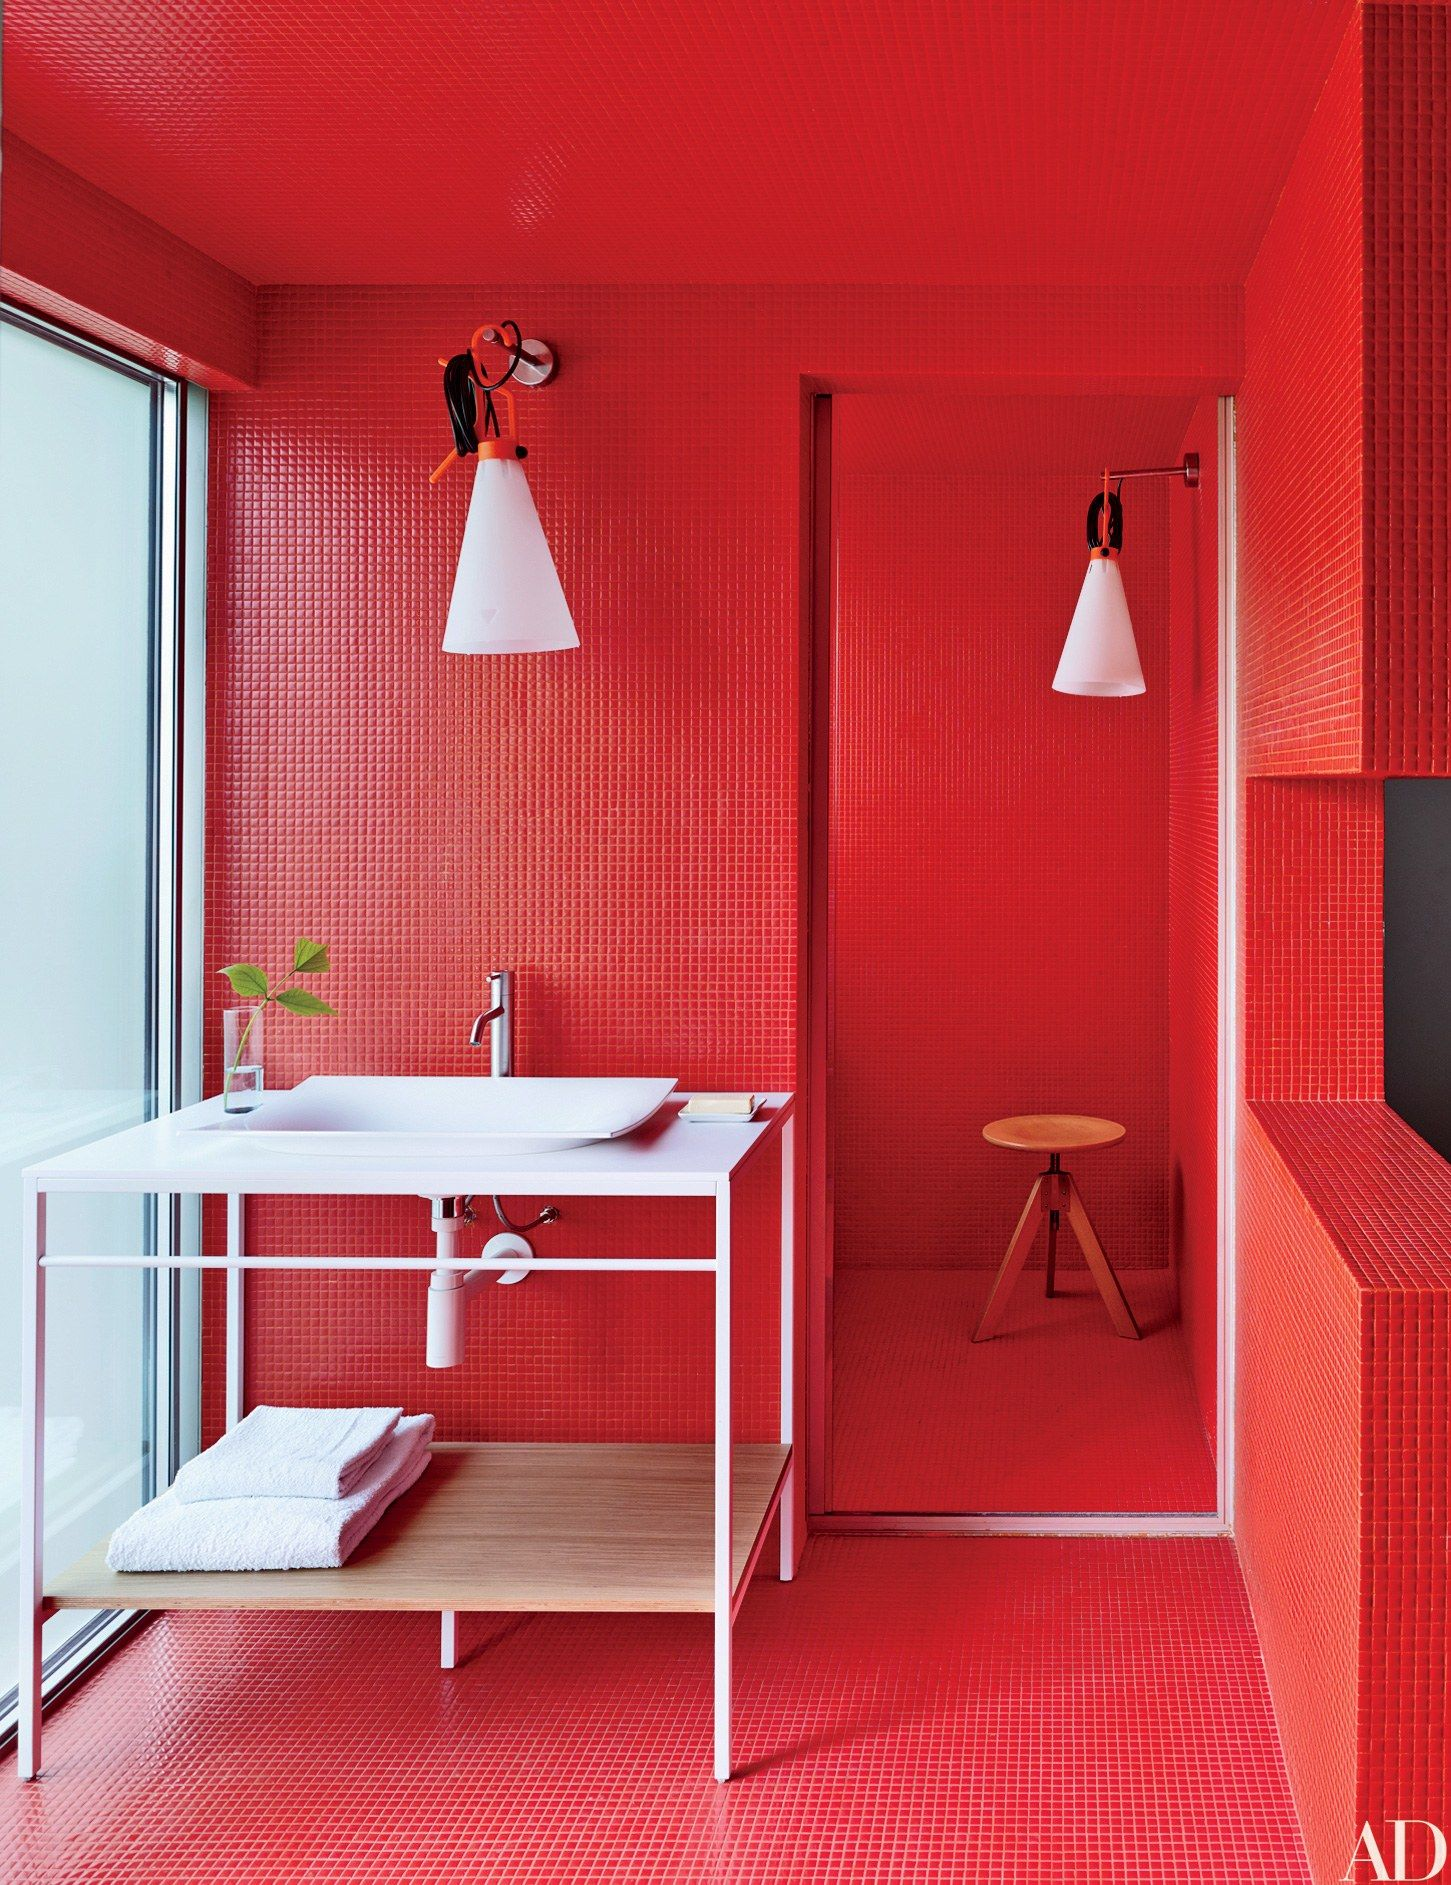 These Colorful Bathroom Design Ideas Will Inspire You to Go Bold ...